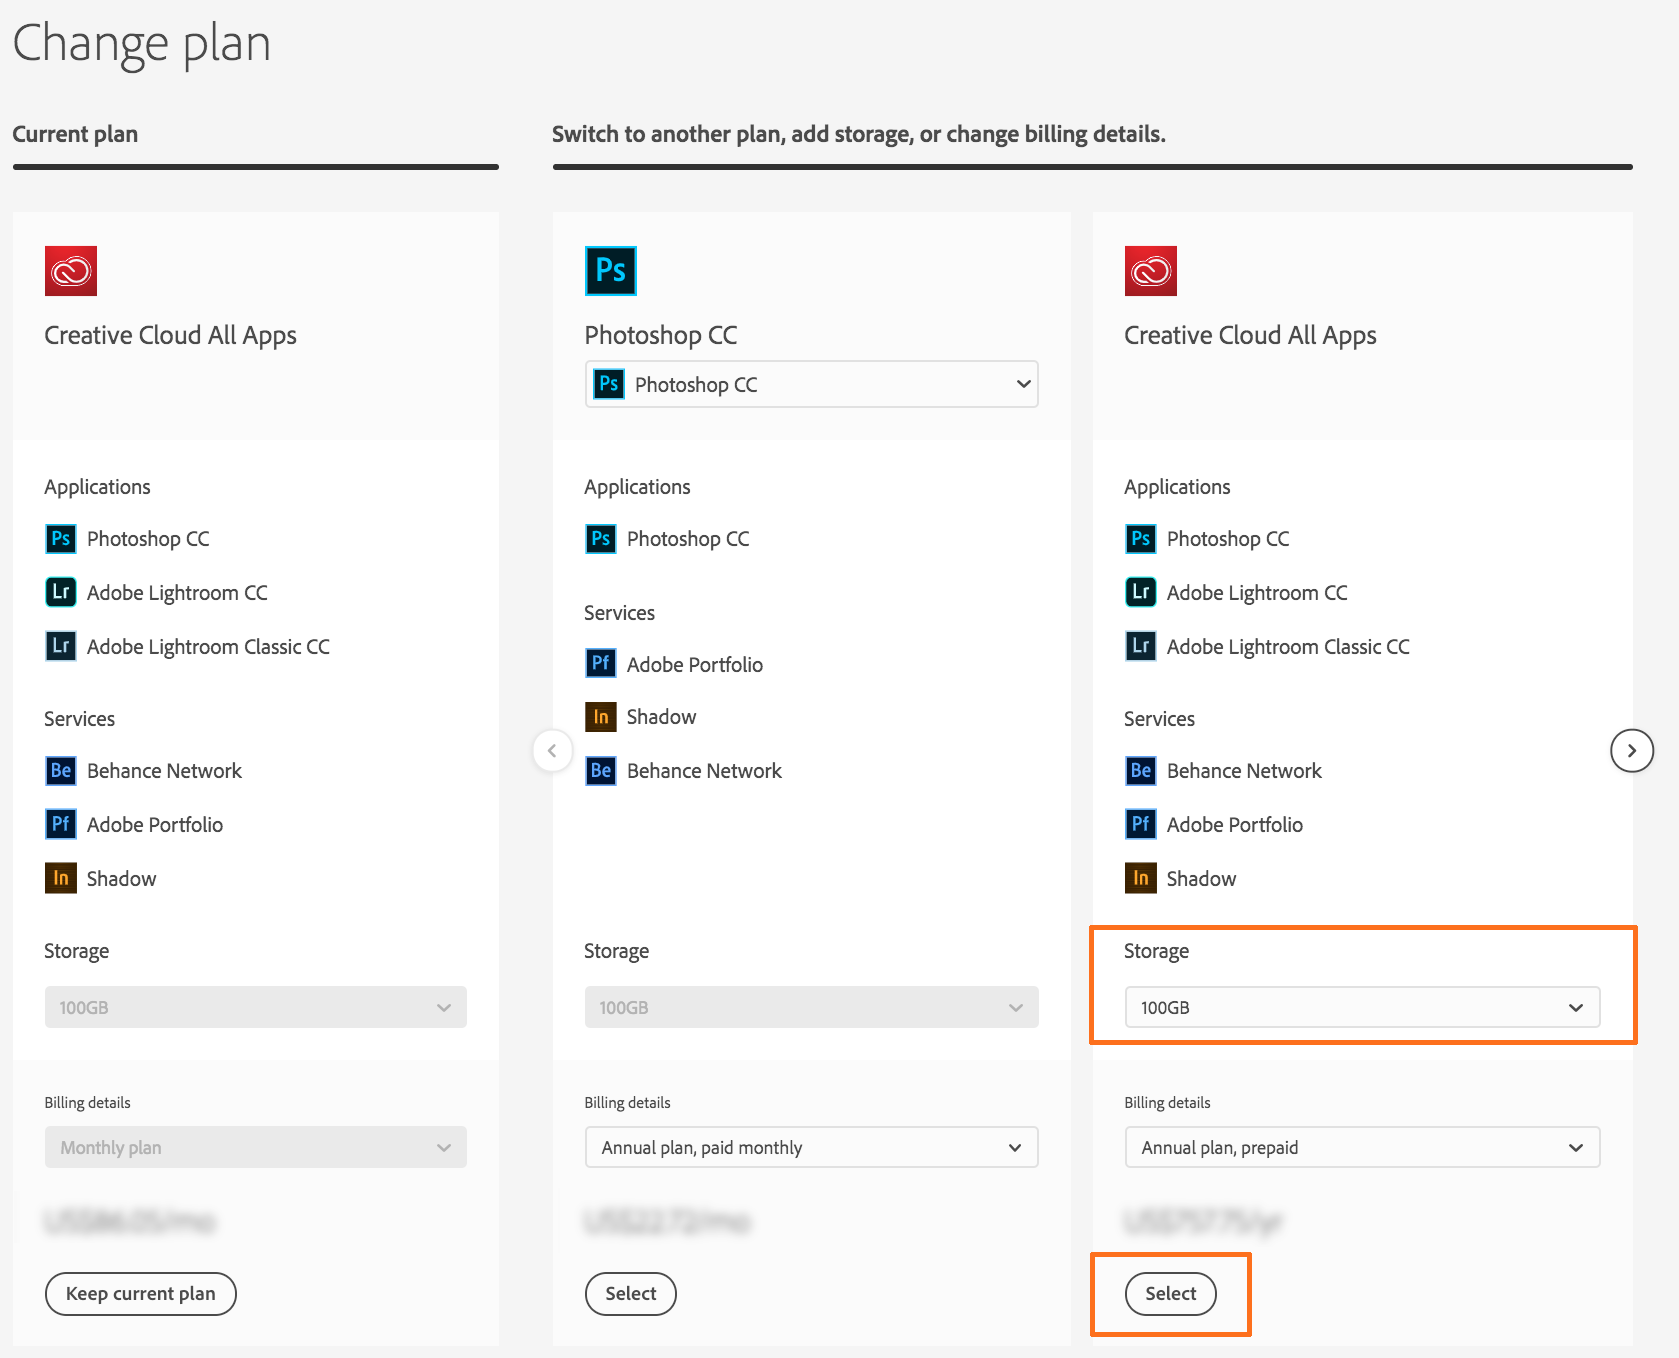 Select the Creative Cloud membership (Annual) plan